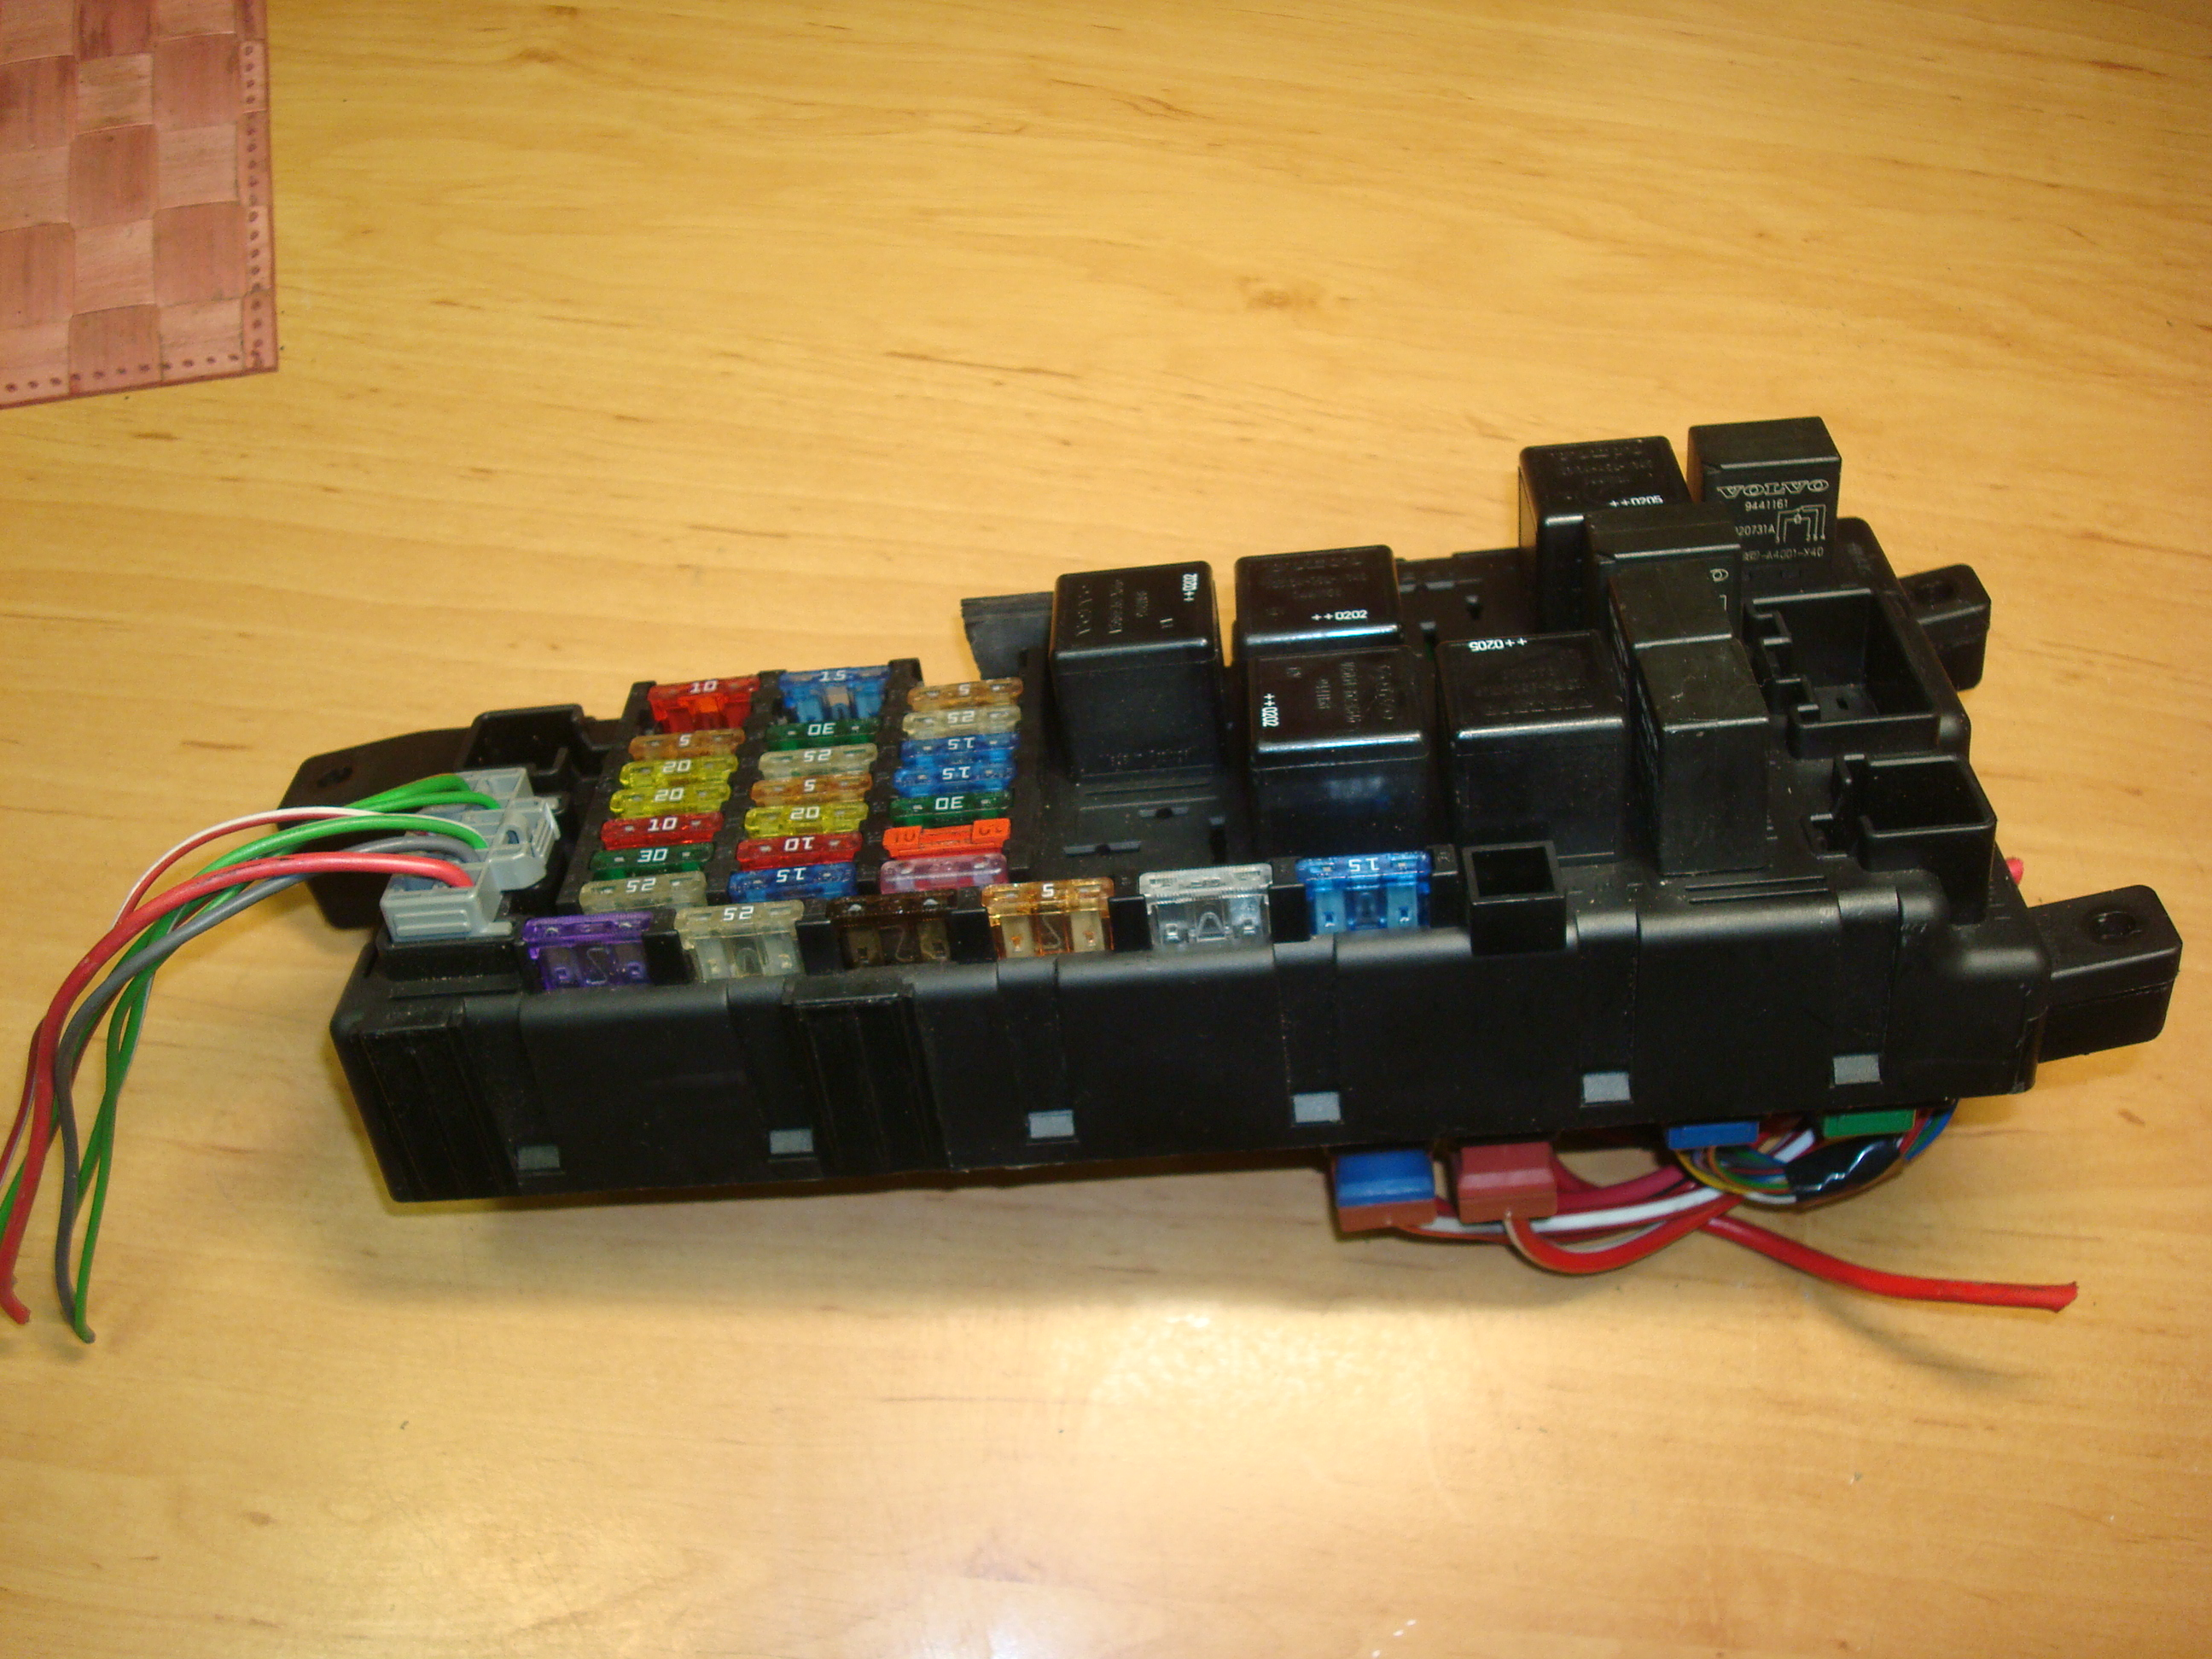 Volvo S60 V70 24 D5 00 06 Fuse Box 8637841 518717004 Article